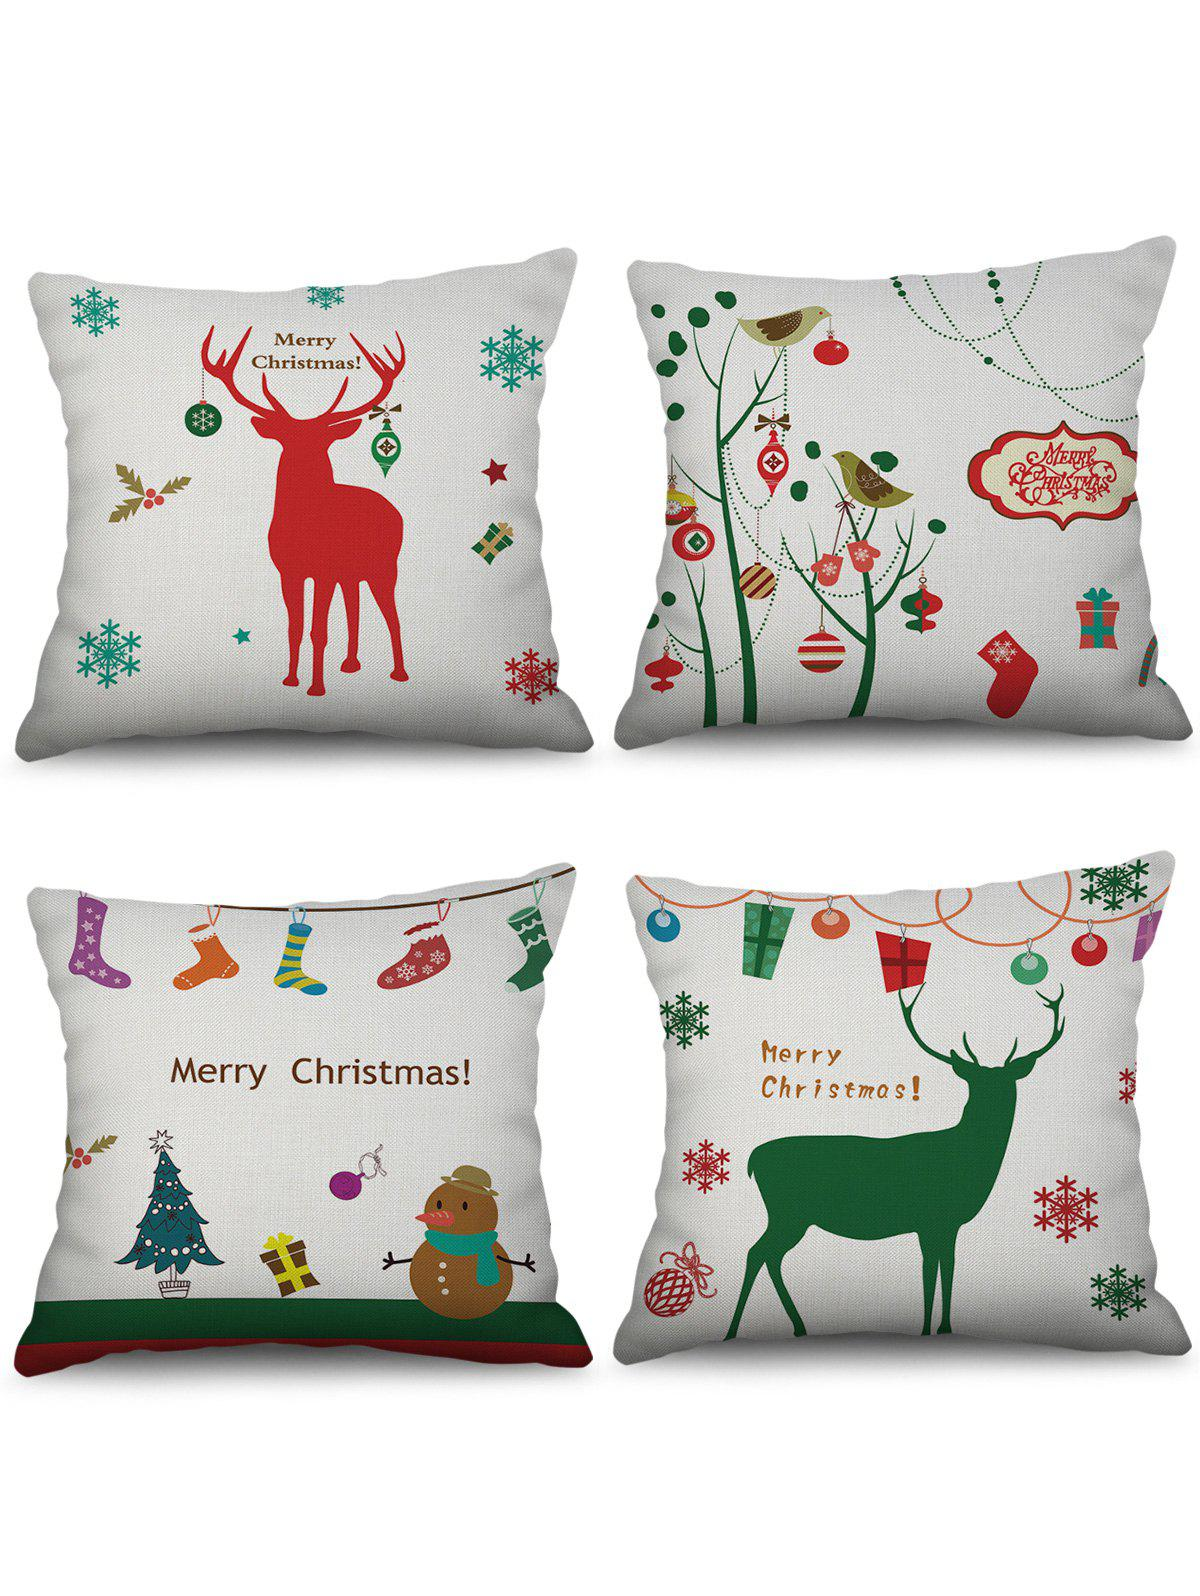 Buy 4PCS Christmas Snowman Elk Gift Printed Pillowcases